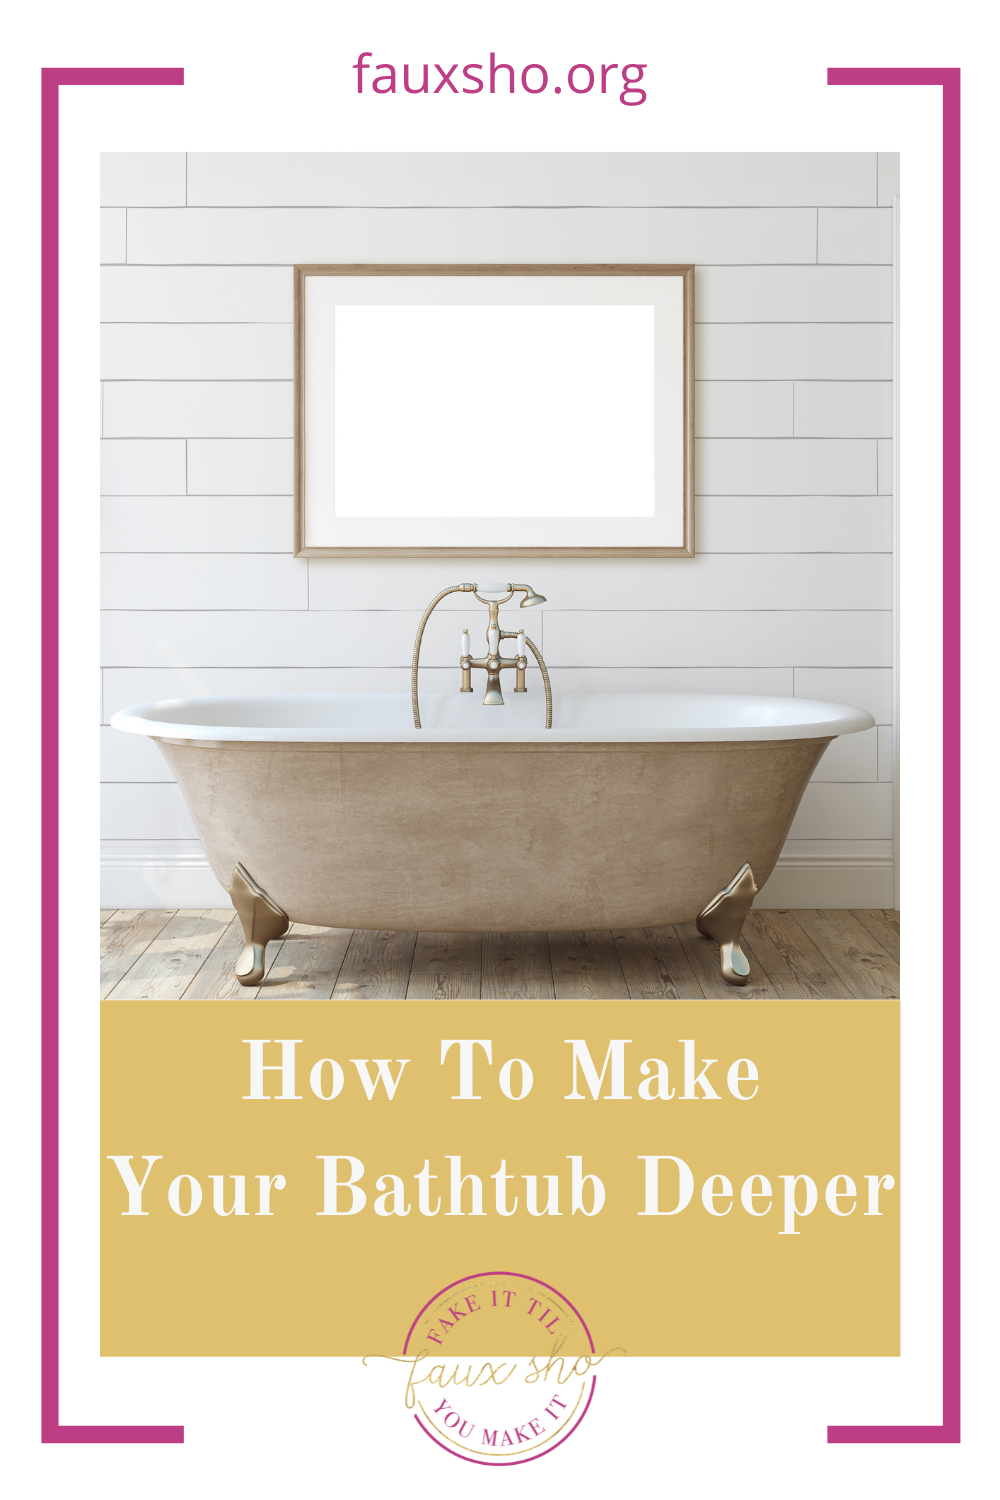 Fauxsho.org has the best ideas to help you fake it 'til you make it! Get the luxury of a deep bathtub in your home. Try these ideas for making your bathtub deeper today!